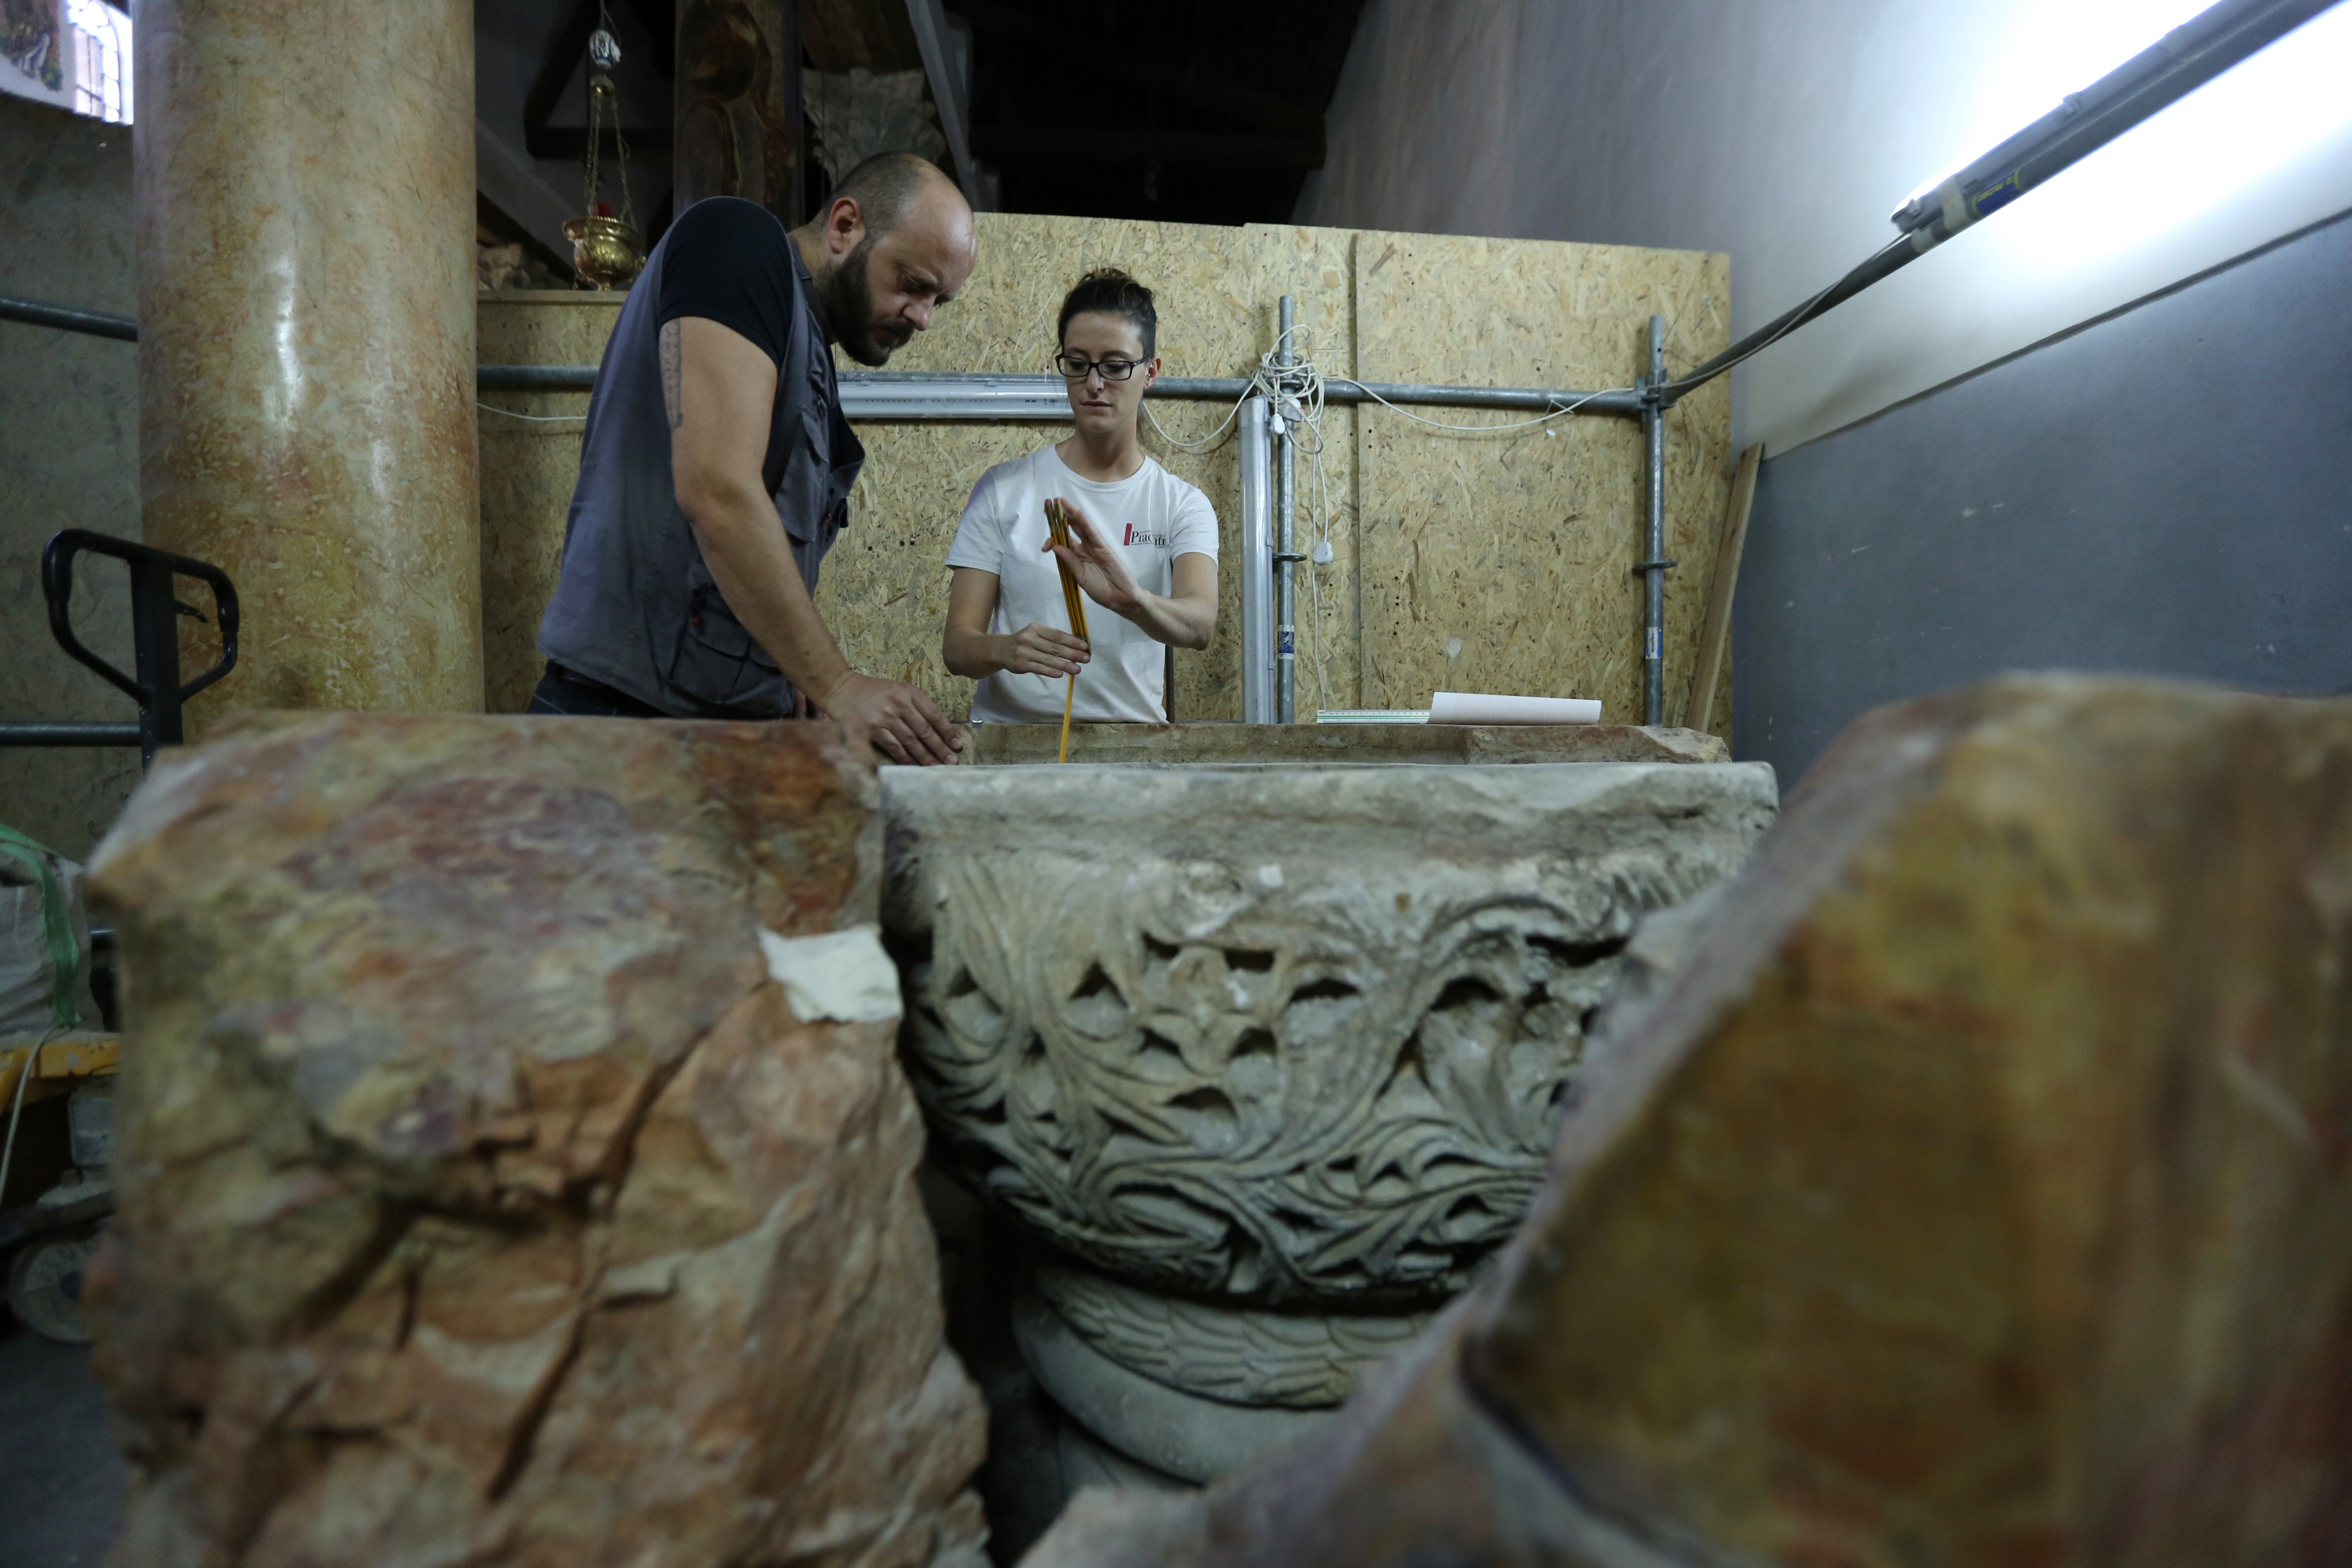 'Magnificent' baptismal font discovered at Bethlehem's Church of the Nativity, Palestinian officials say